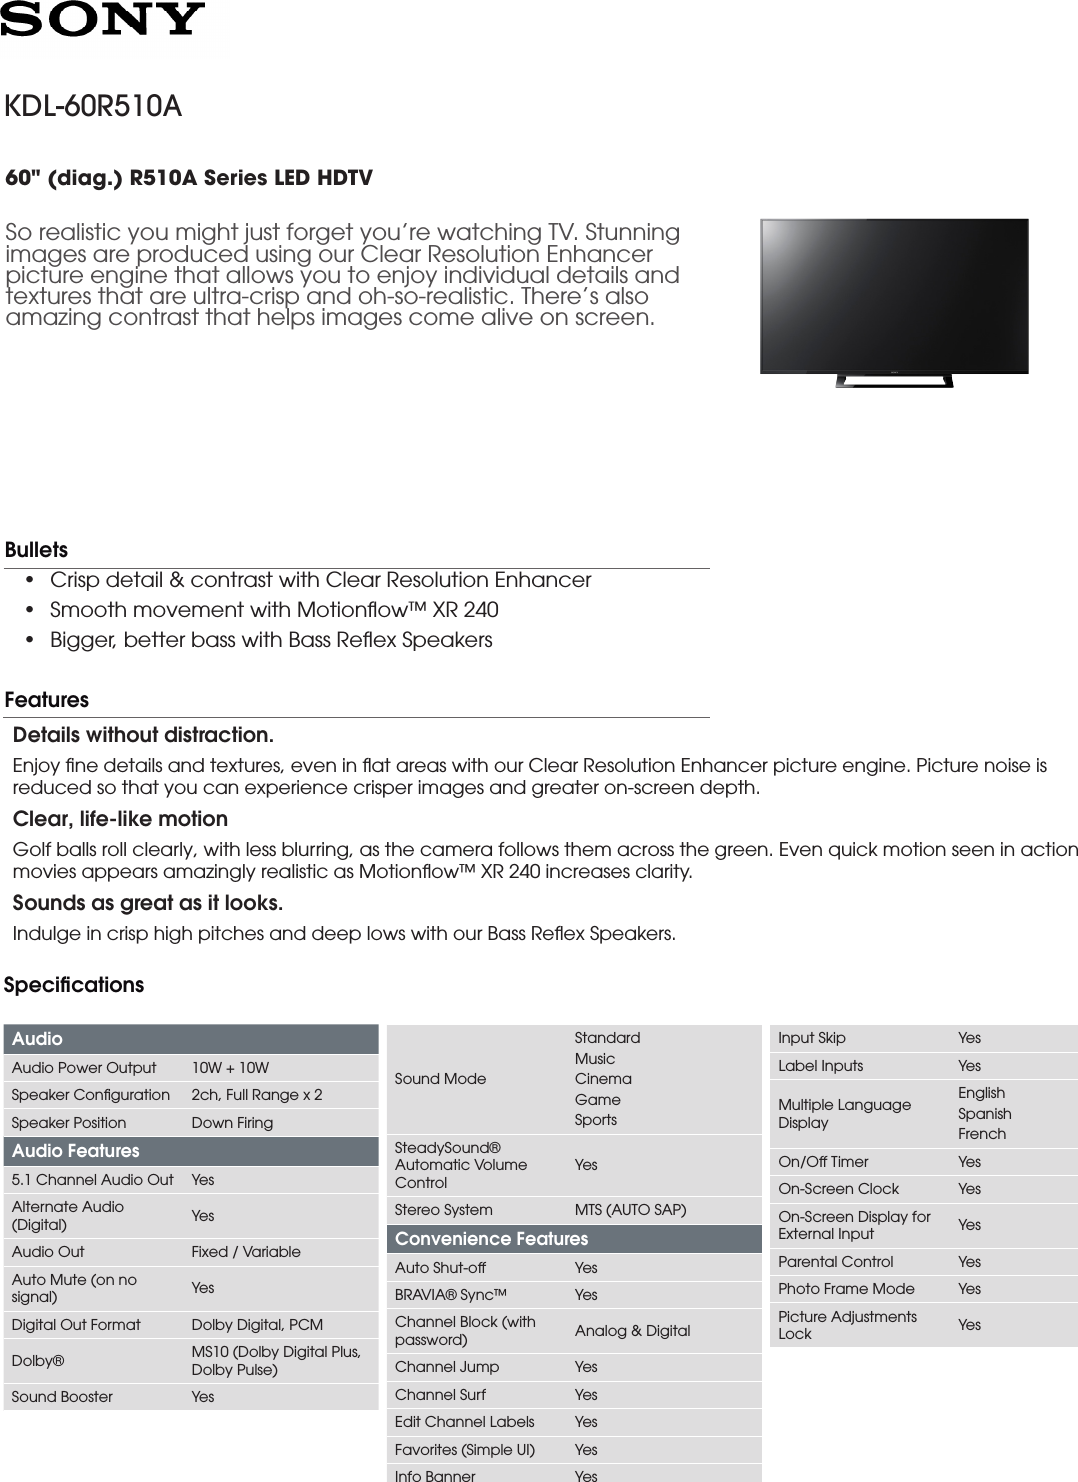 Sony KDL 60R510A User Manual Marketing Specifications(Black